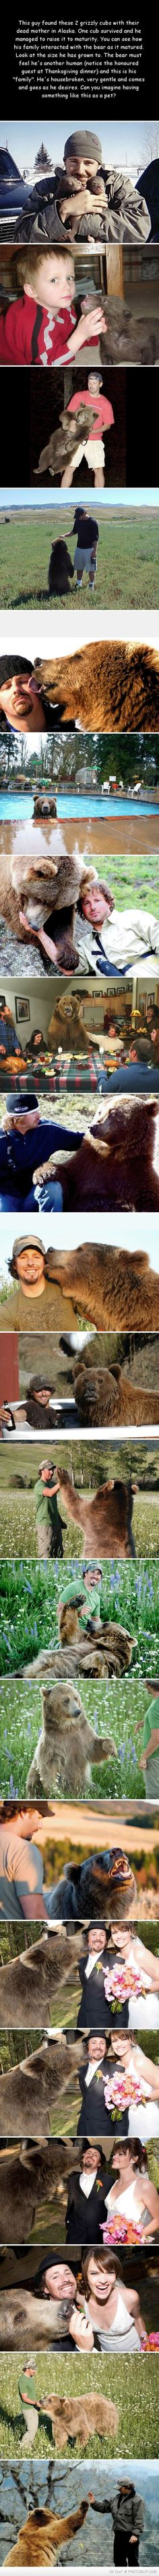 The Story Of A Man And A Bear. This is awesome!